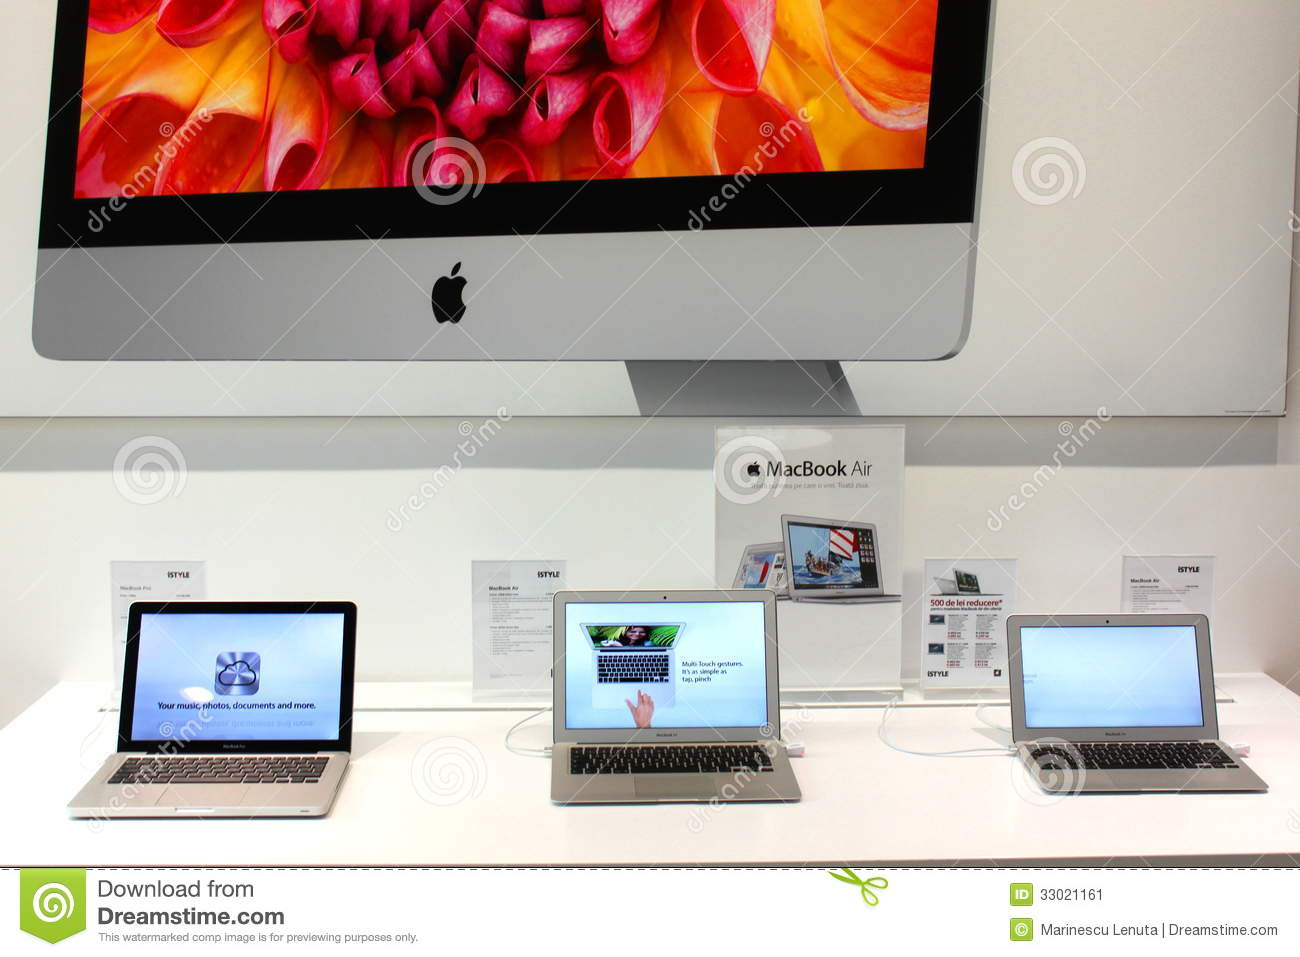 The MacBook Air is a line of Macintosh subnotebook computers developed and manufactured by Apple Inc. It consists of a full-size keyboard, a machined aluminum case, and a thin light structure. The Air is available with a screen size of (measured diagonally) inch ( cm), with different specifications produced by Apple.